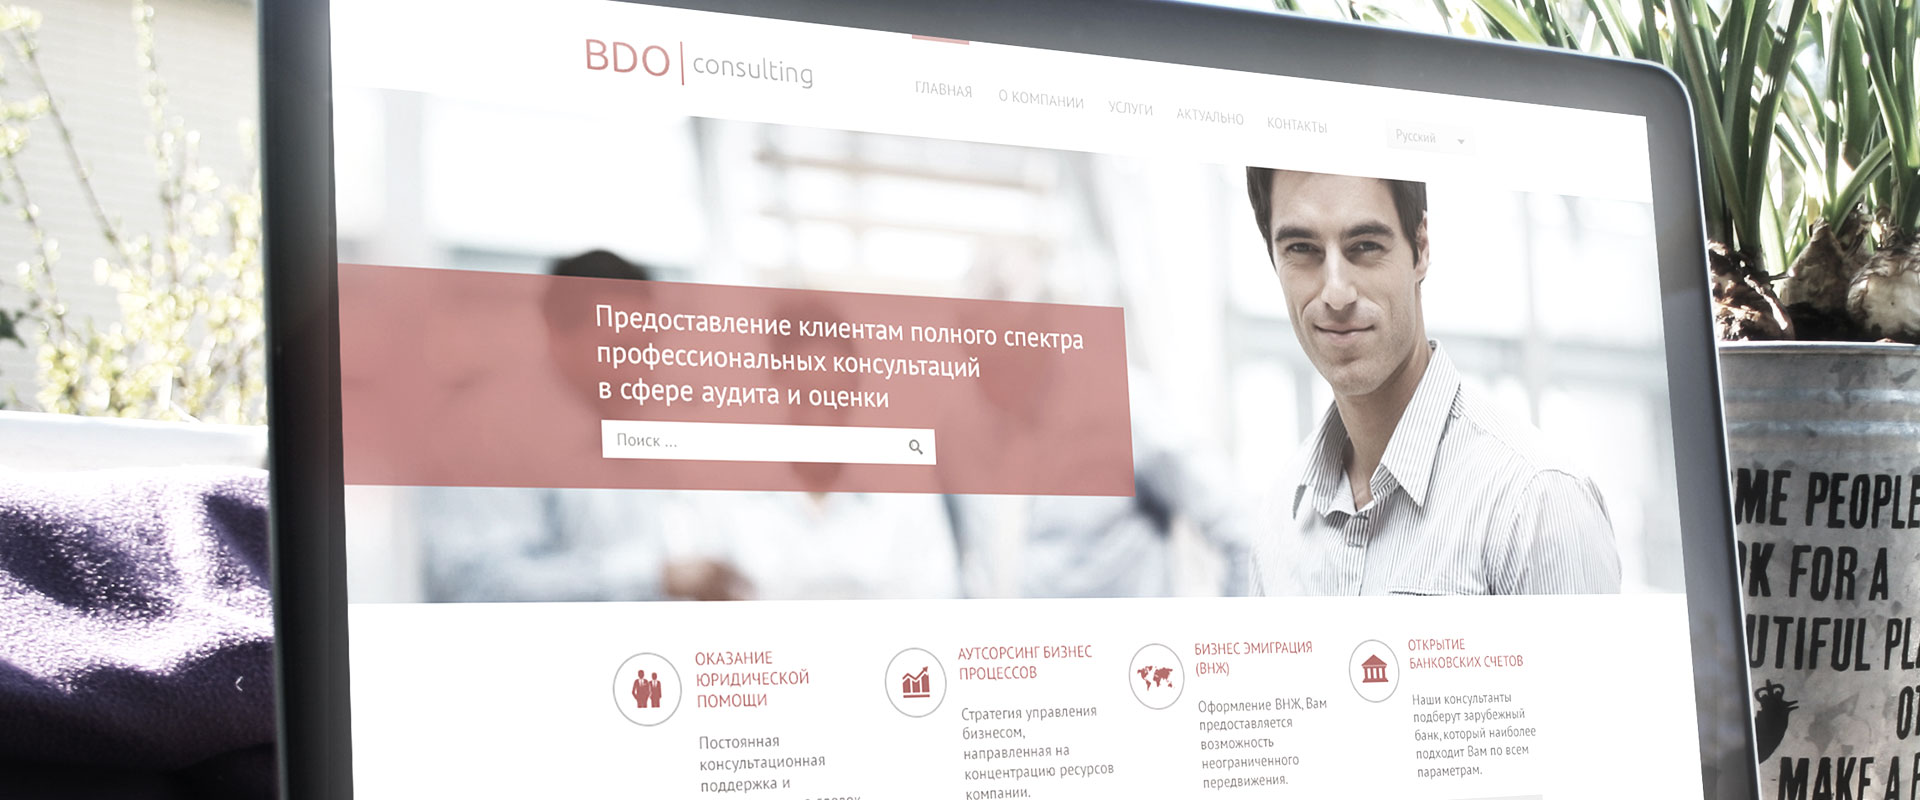 bdo-website-1